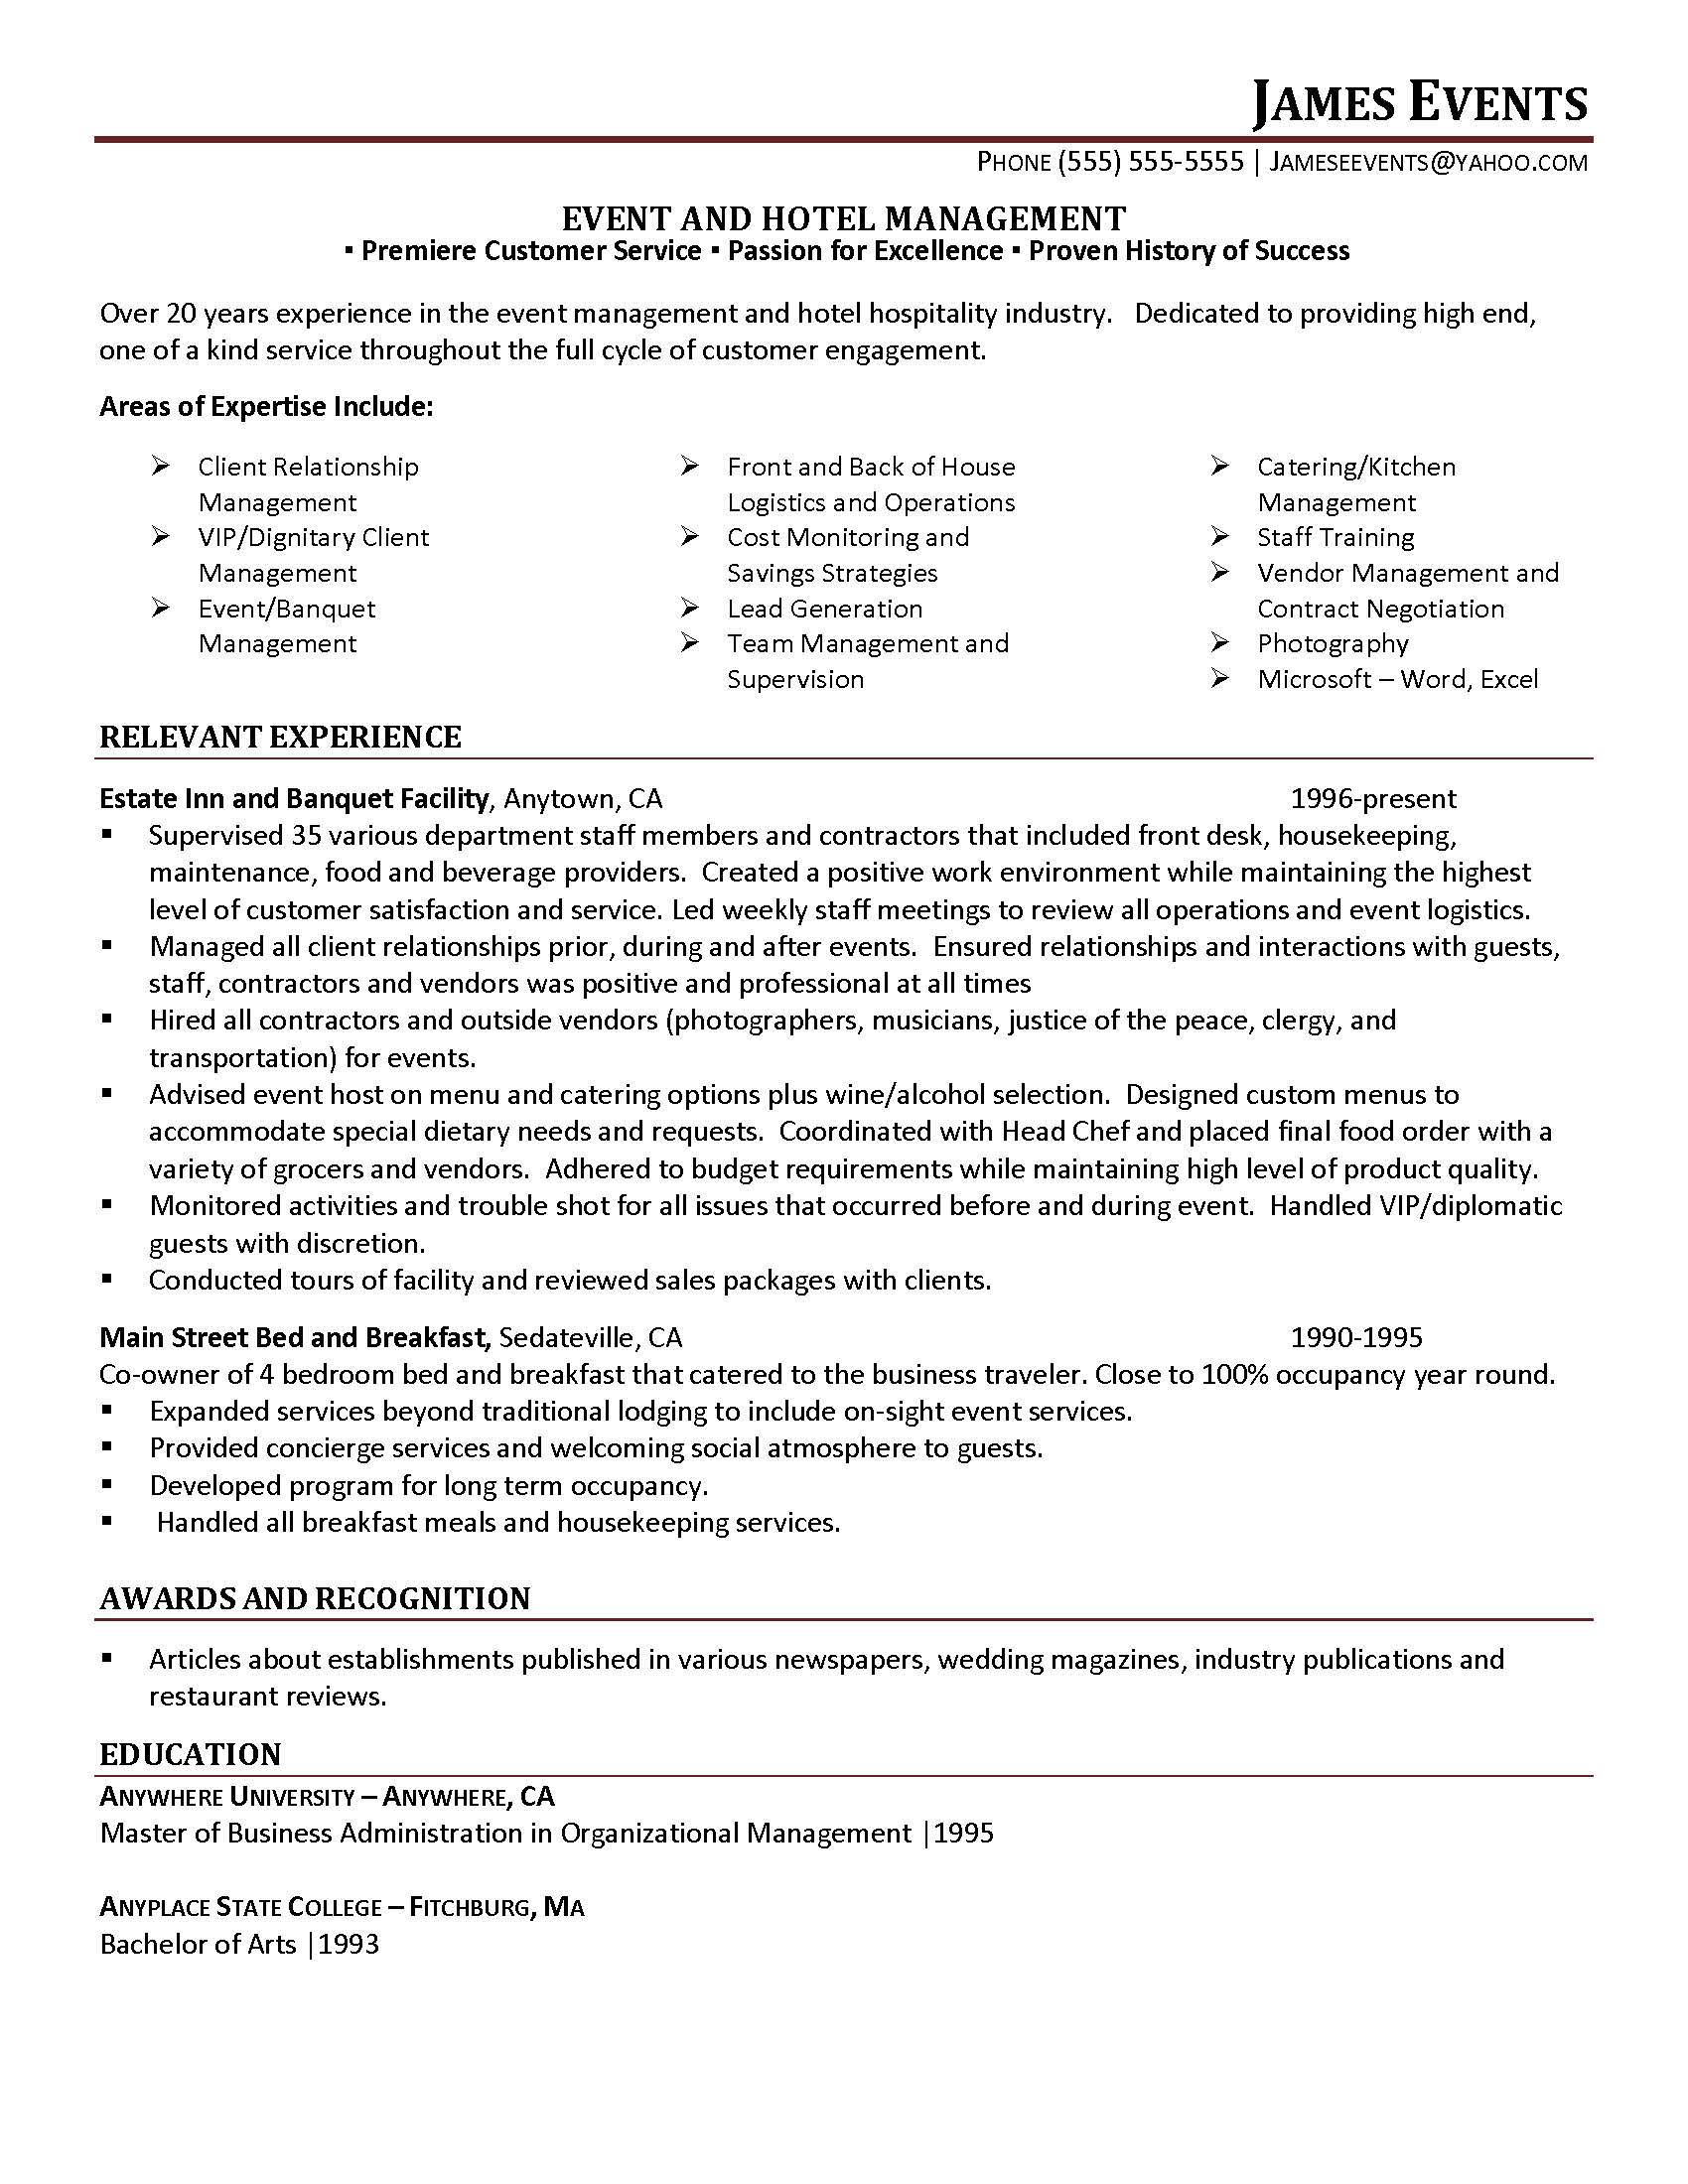 beautiful sample resume for client relationship management